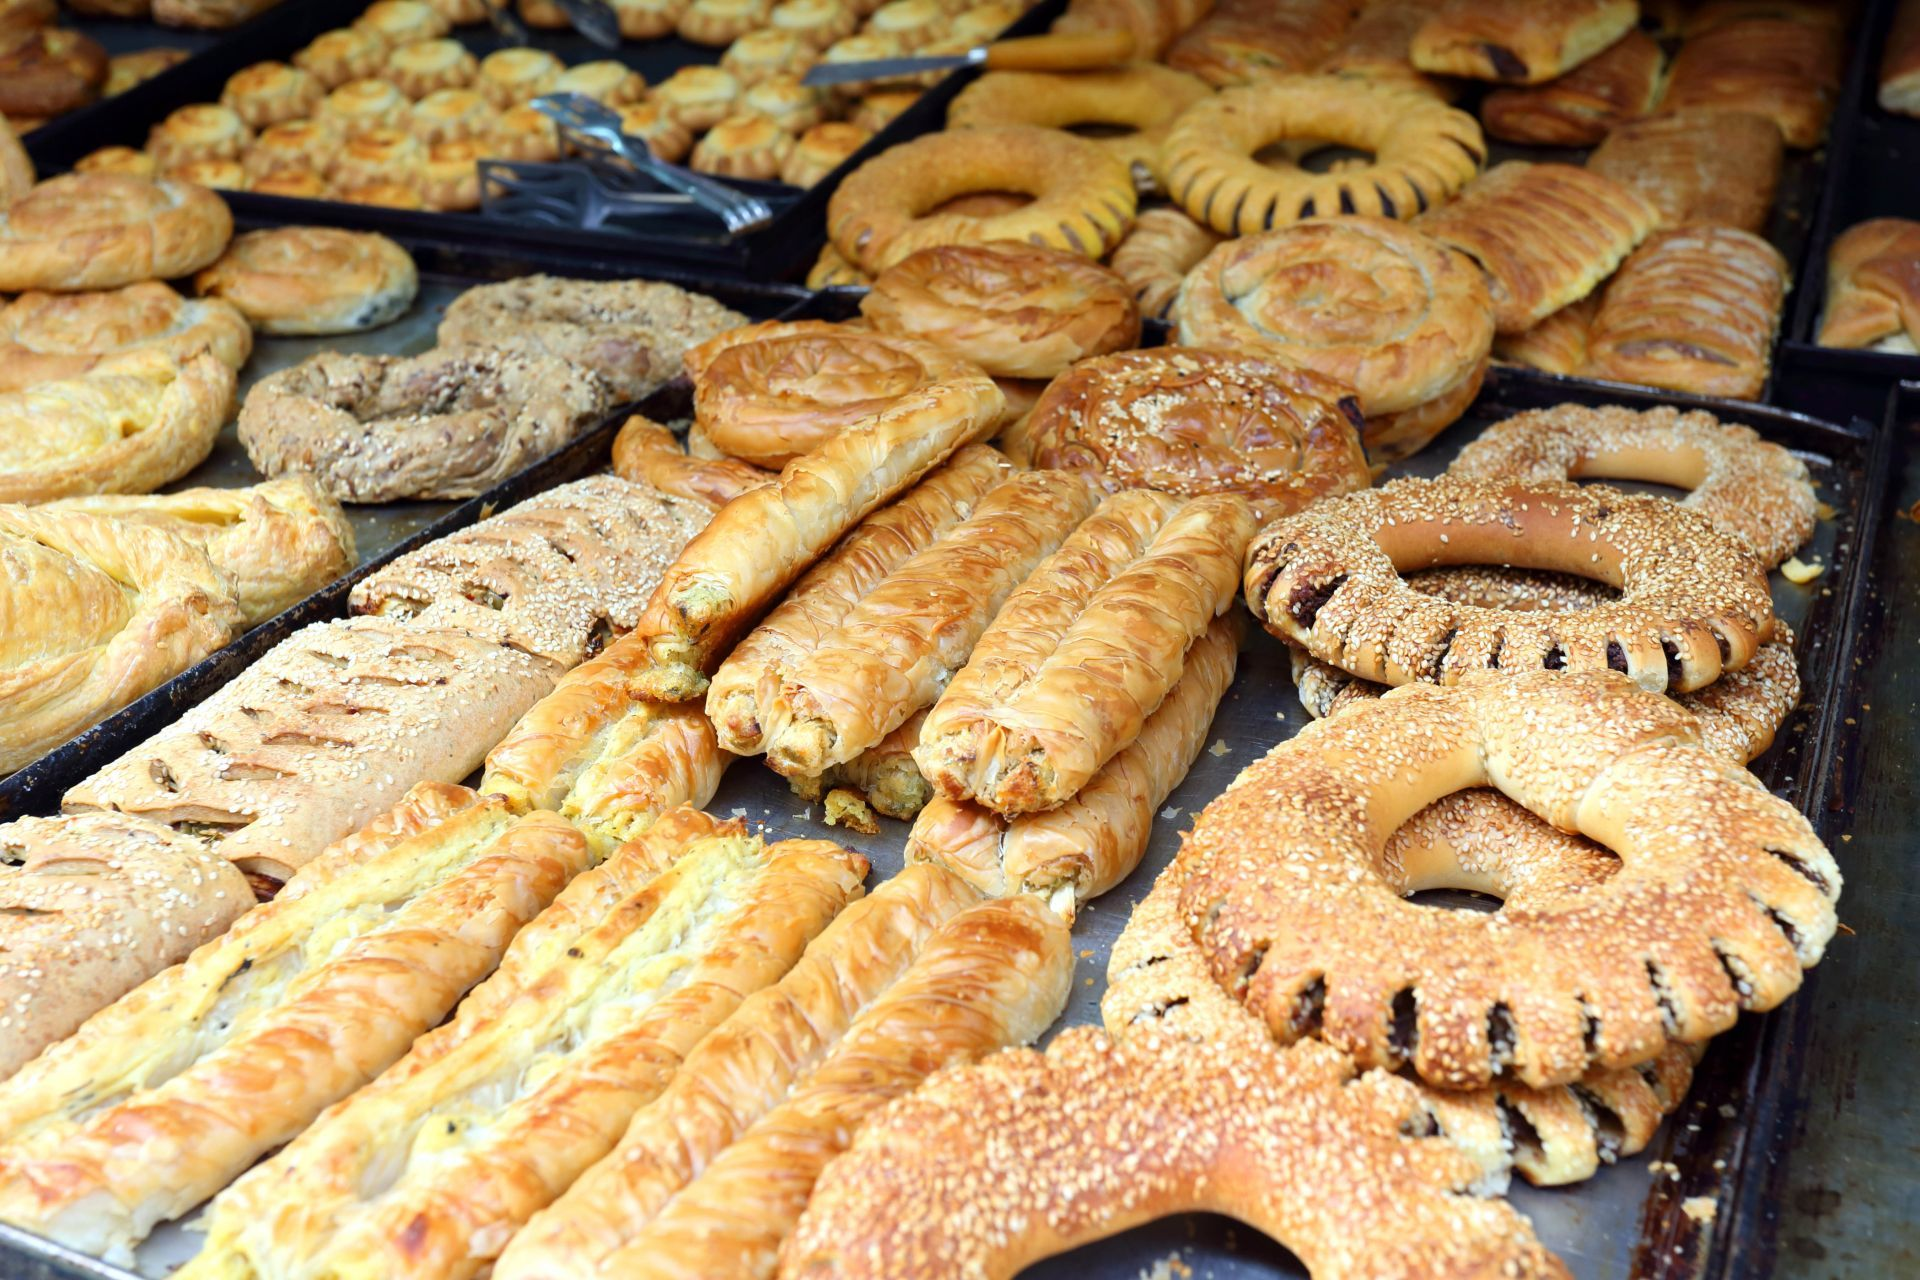 Bakeries in Chania